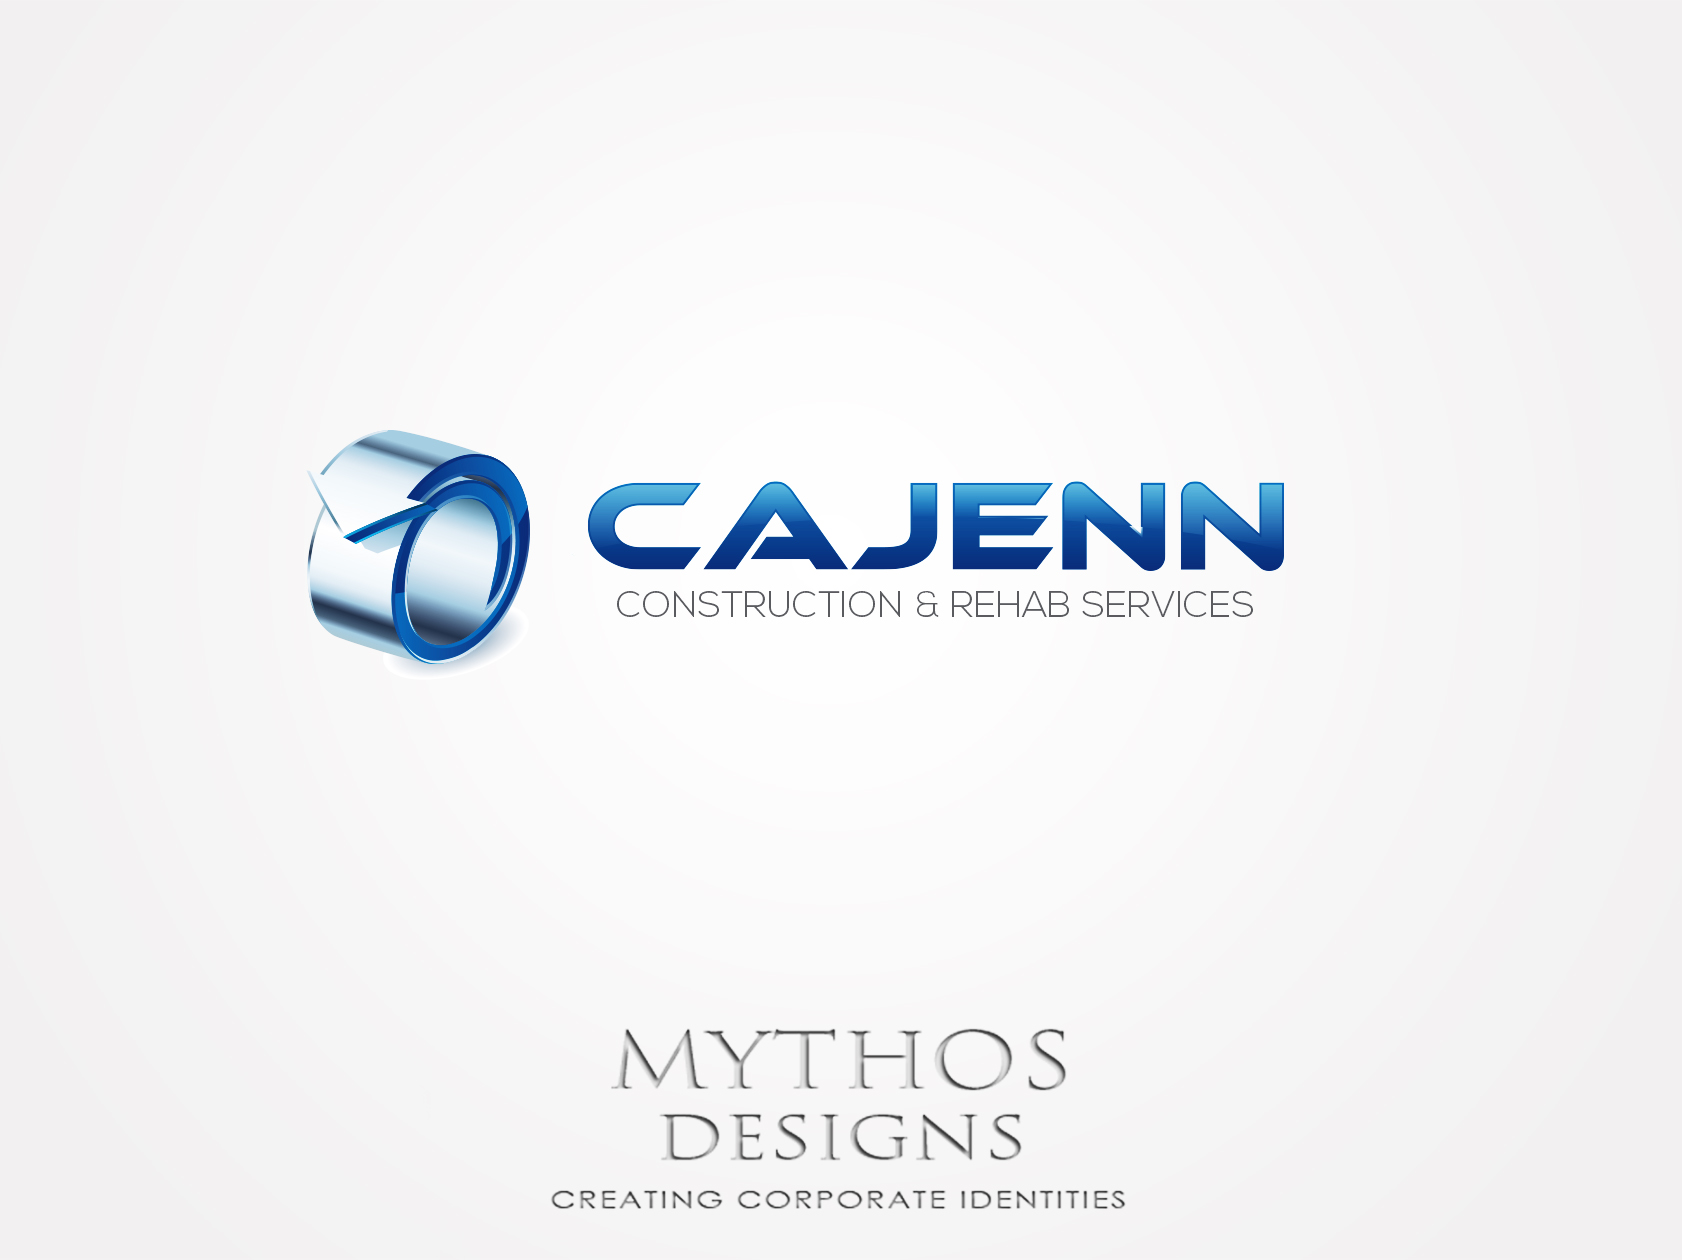 Logo Design by Mythos Designs - Entry No. 313 in the Logo Design Contest New Logo Design for CaJenn Construction & Rehab Services.